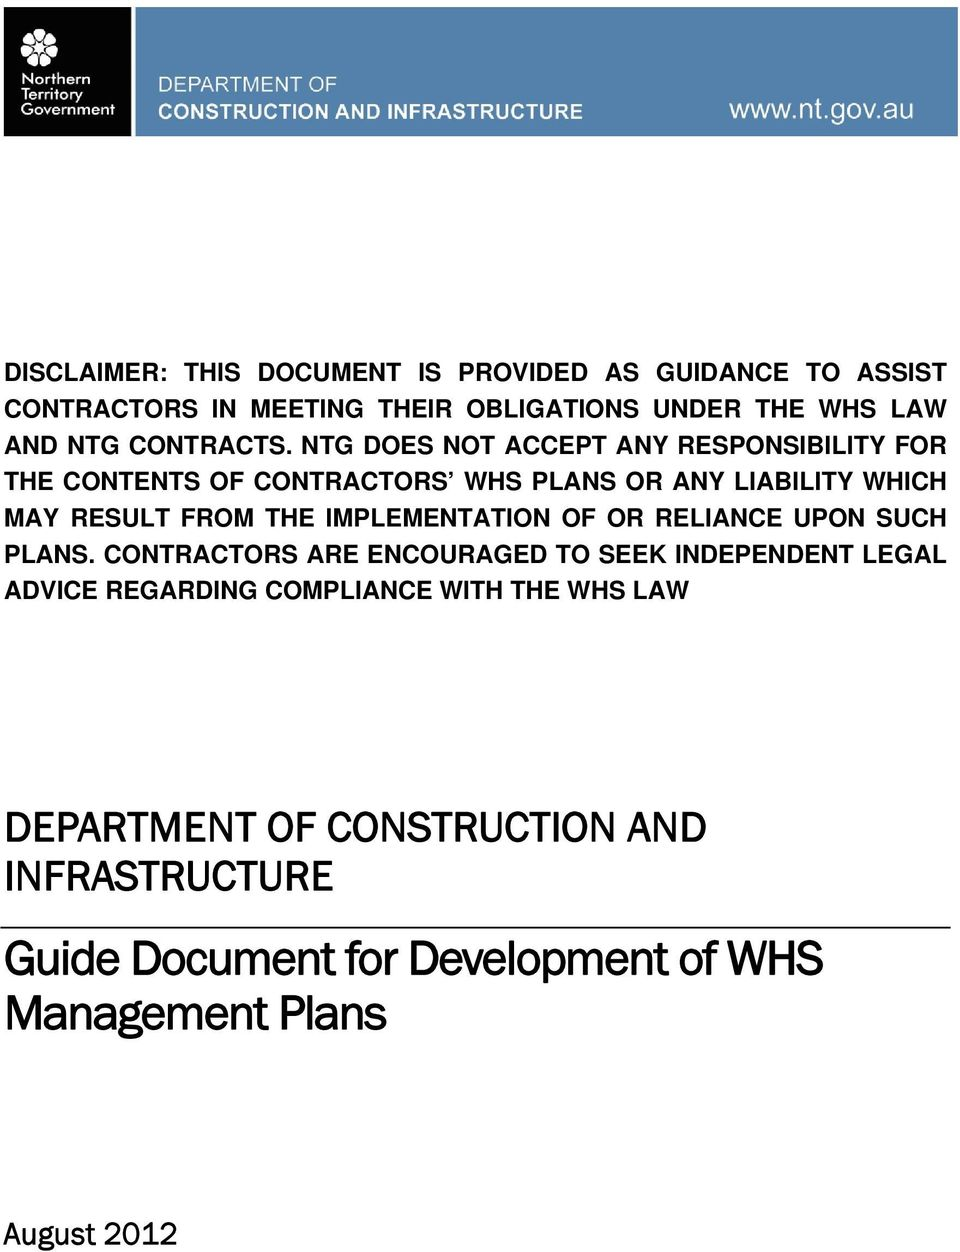 NTG DOES NOT ACCEPT ANY RESPONSIBILITY FOR THE CONTENTS OF CONTRACTORS WHS PLANS OR ANY LIABILITY WHICH MAY RESULT FROM THE